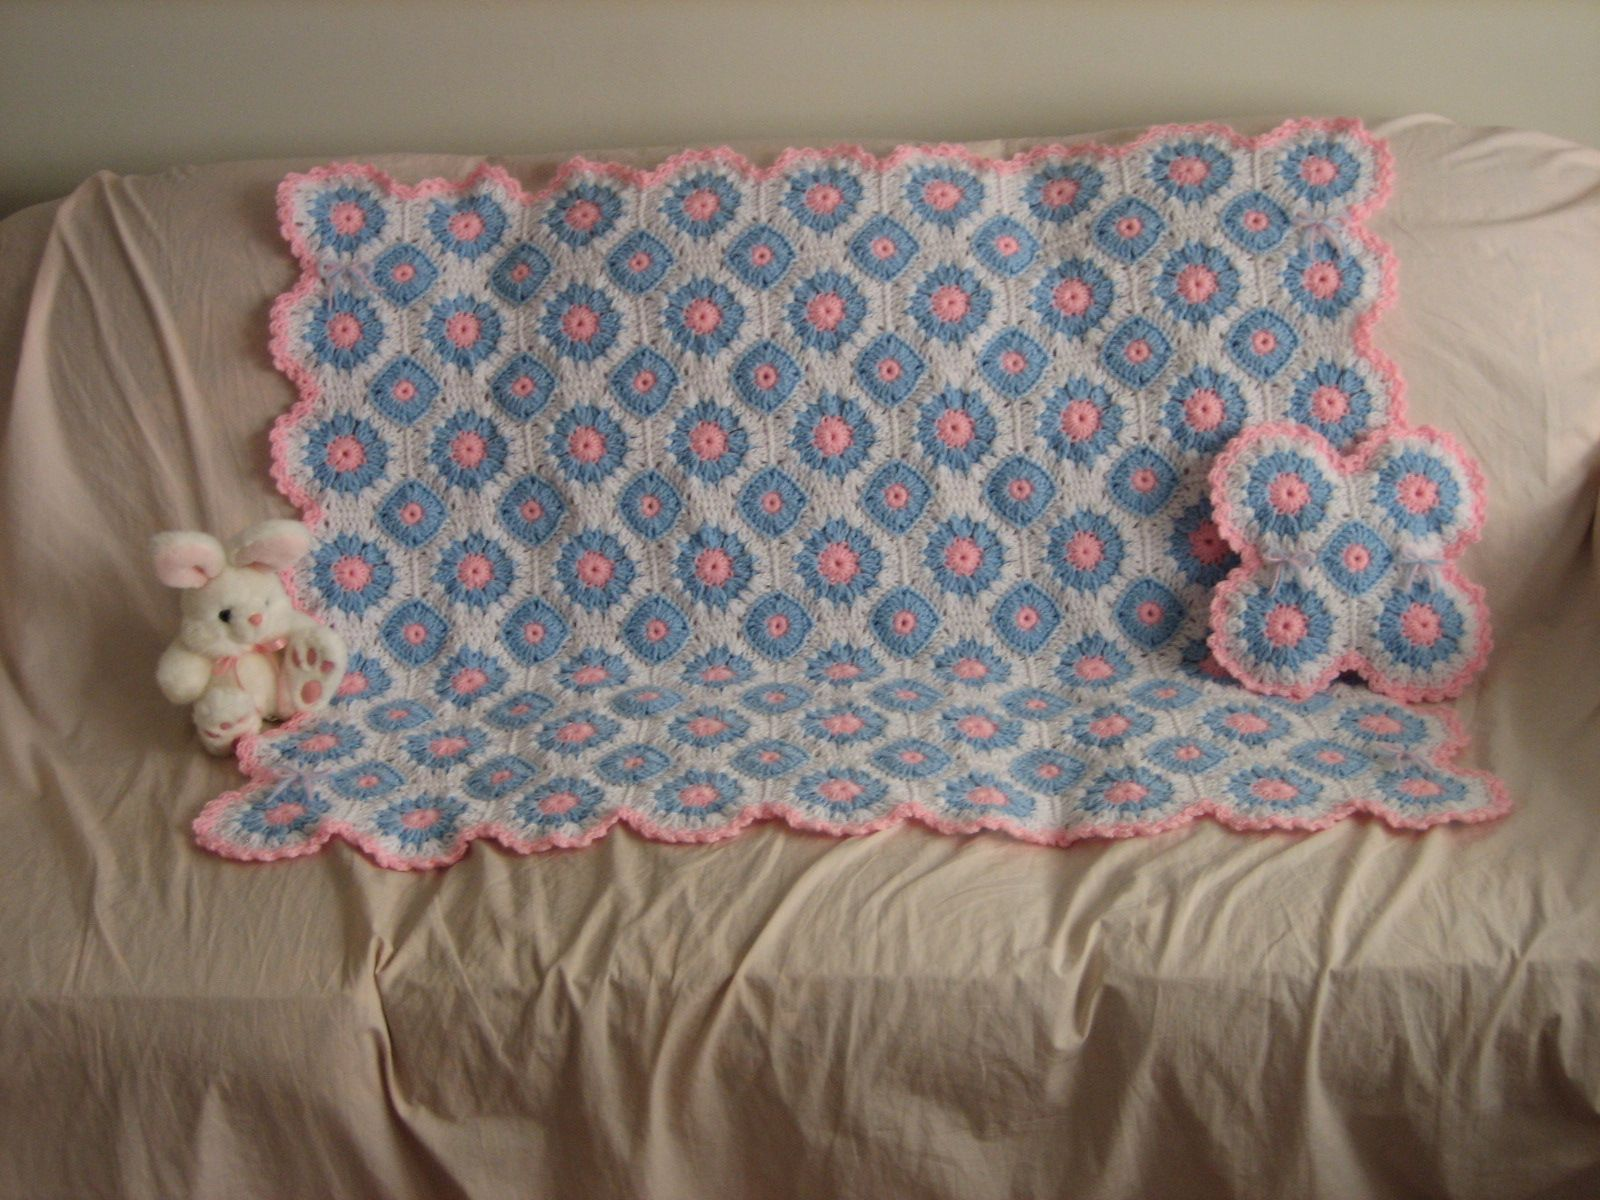 Lacy Crochet Afghan and Pillow Set Lacy Crochet Afghan and Pillow Set #favecraftscom #favecraftscom #crochet #afghan #pillow #lacy #and #setLacy Crochet Afghan and Pillow Set Lacy Crochet Afghan and Pillow Set | Lacy Crochet Afghan and Pillow Set | #favecraftscom Lacy Crochet Afghan and Pillow Set Lacy Crochet Afghan and Pillow Set #favecraftscom #favecraftscom #crochet #afghan #pillow #lacy #and #setLacy Crochet Afghan and Pillow Set Lacy Crochet Afghan and Pillow Set | Lacy Crochet Afghan and  #favecraftscom